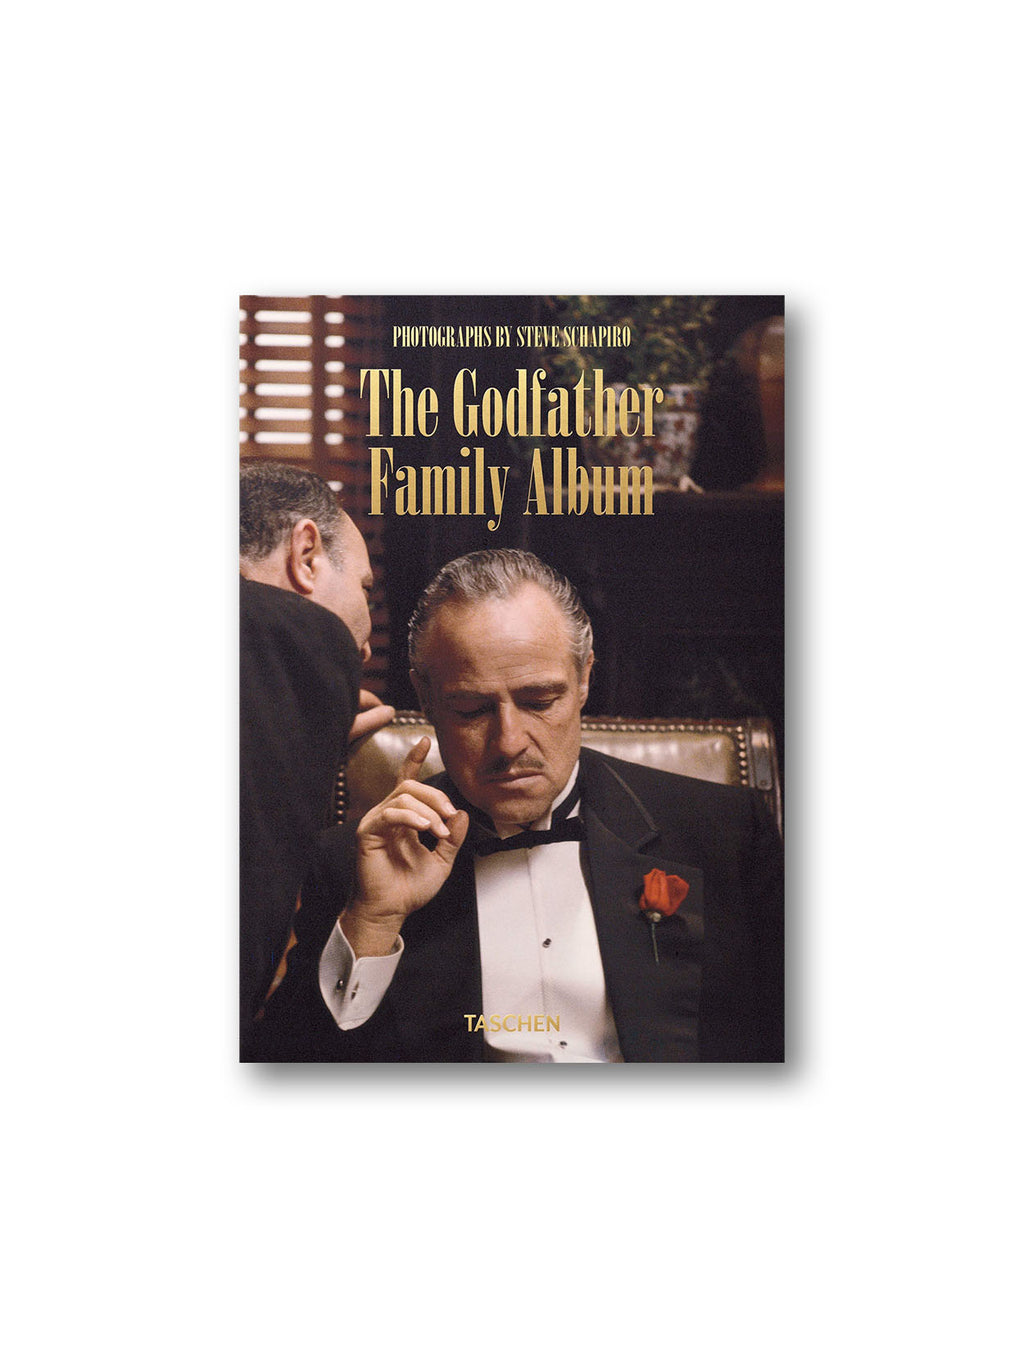 The Godfather Family Album - 40th Anniversary Edition